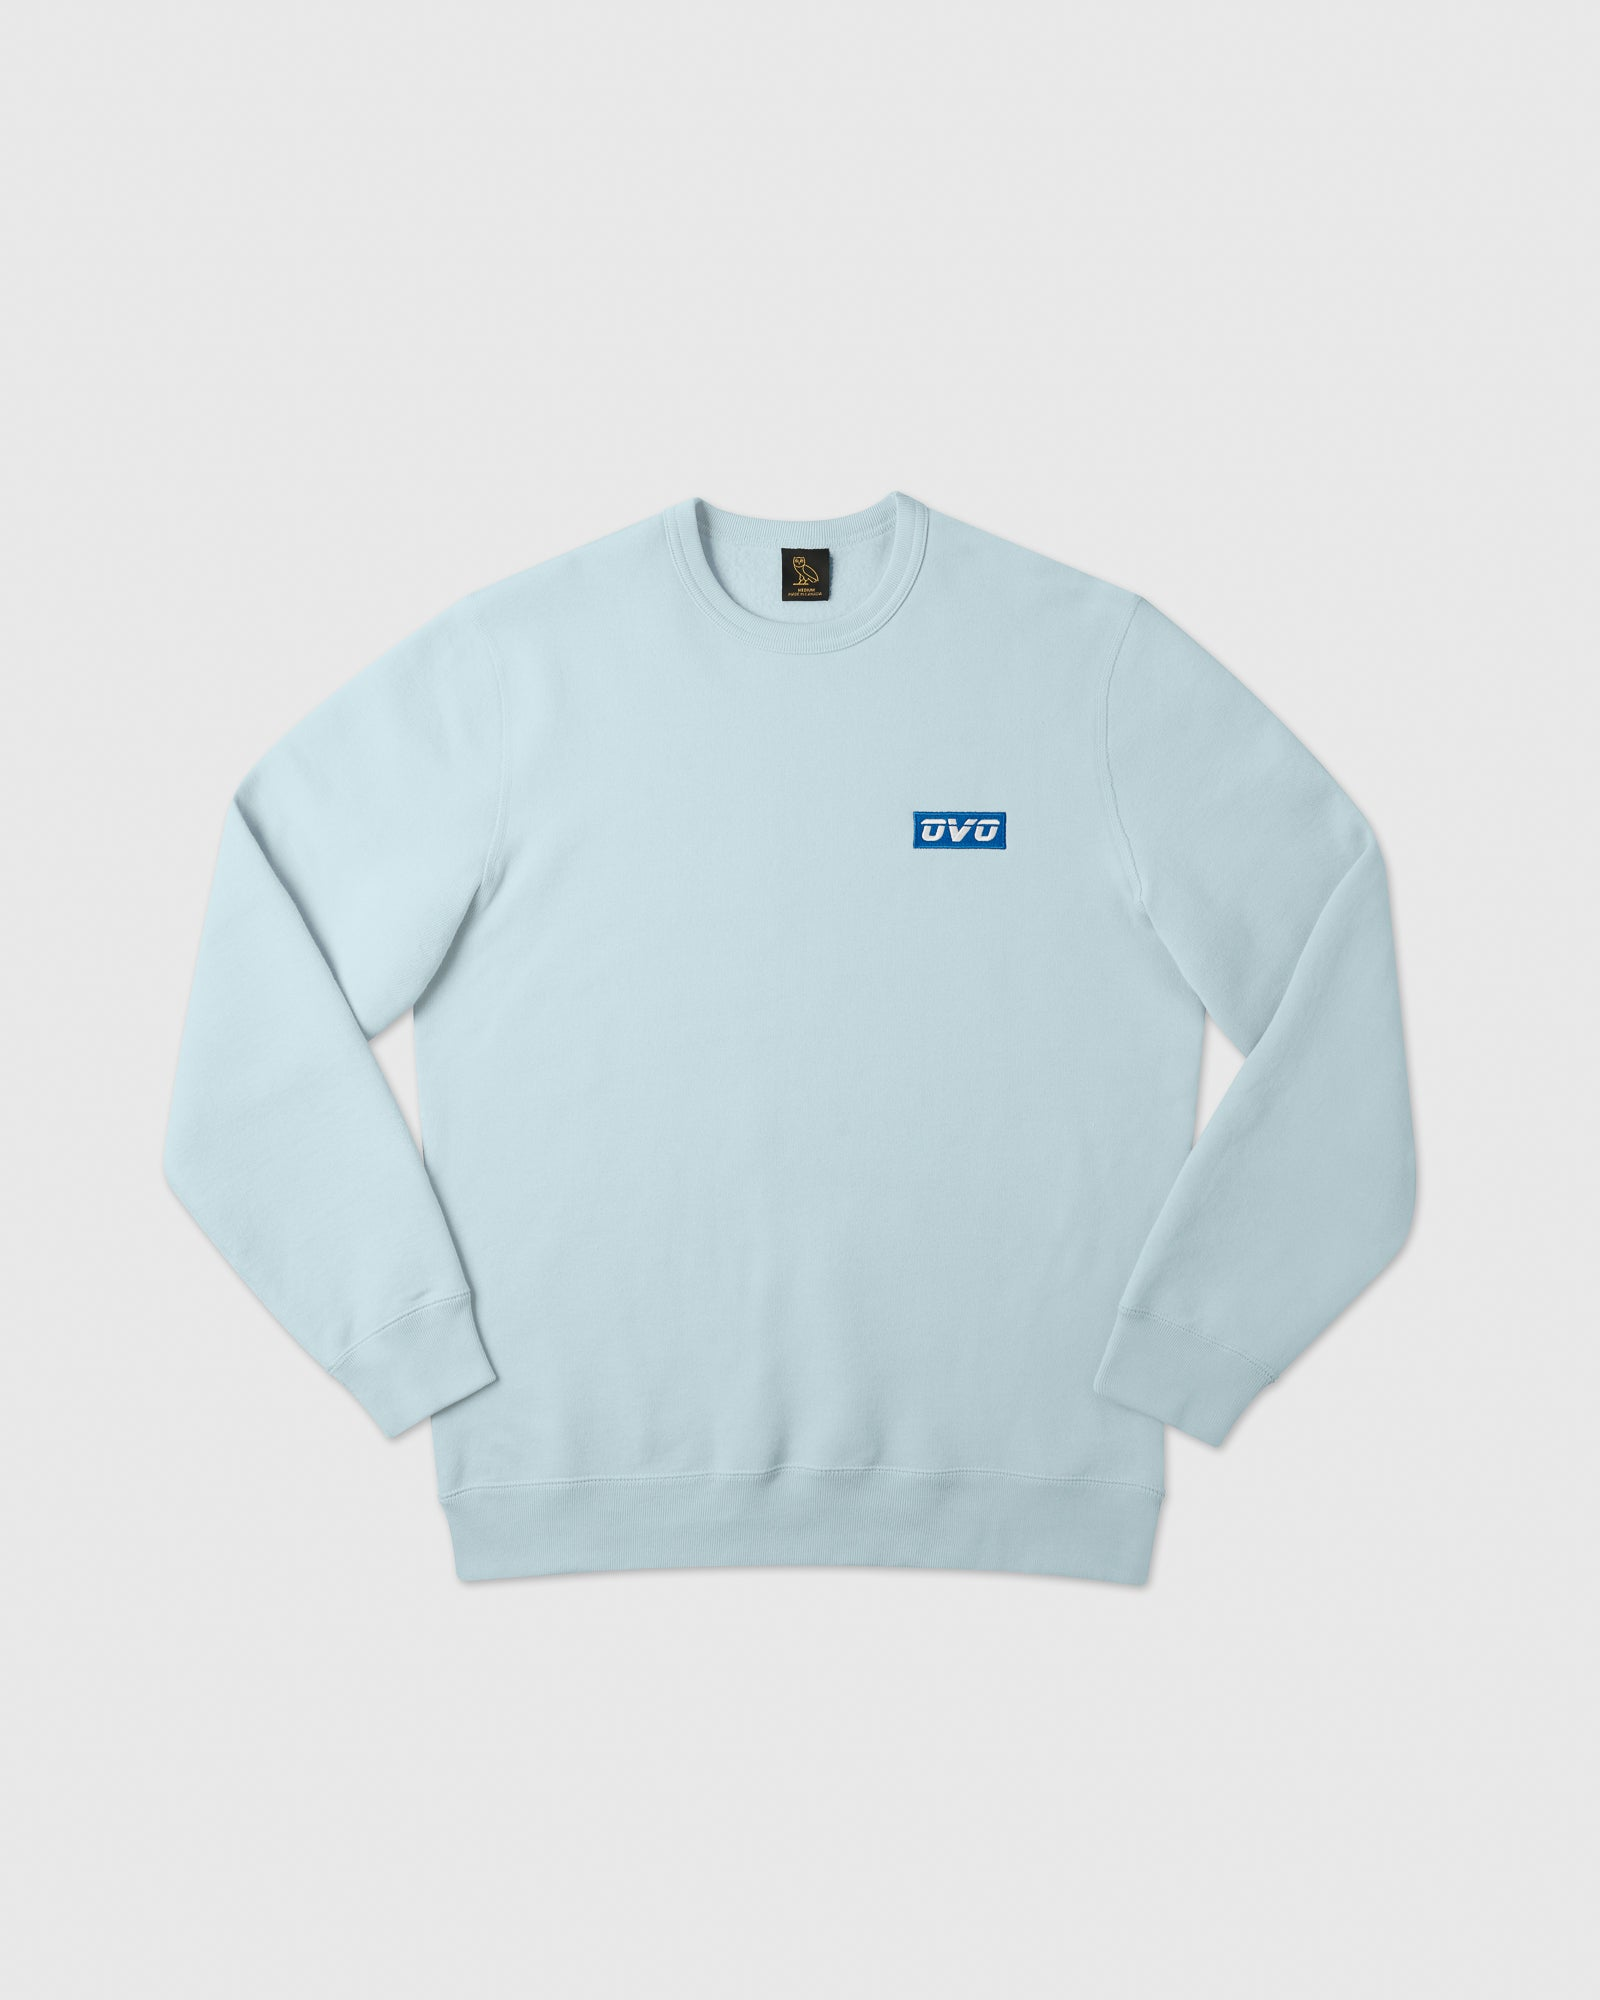 EMBROIDERED RUNNER LOGO CREWNECK - DUSTY BLUE IMAGE #1